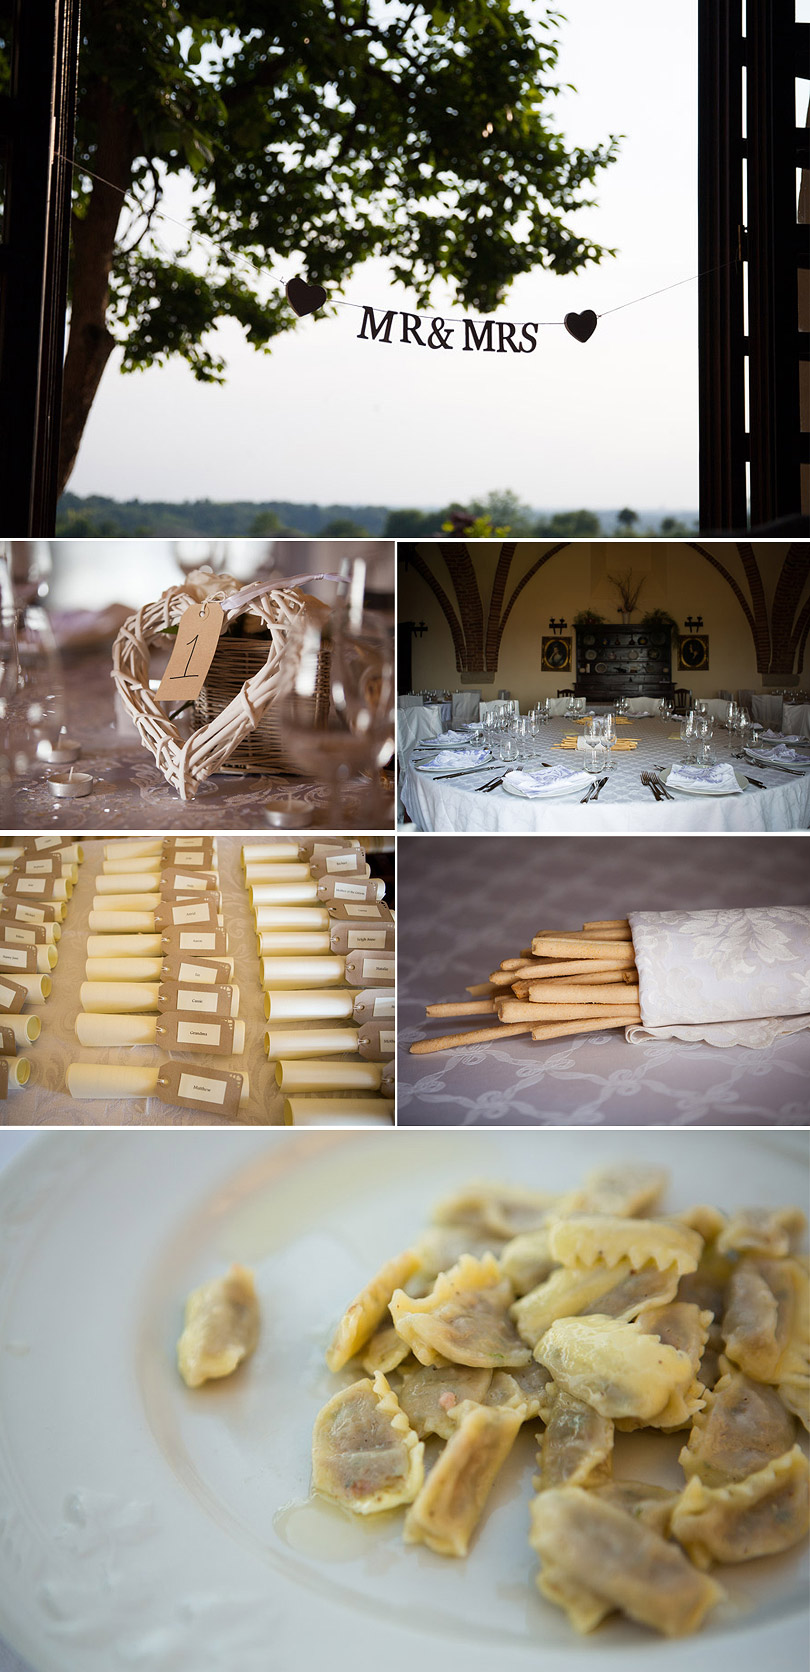 Castello-di-Cortanze-Italian-Wedding-LilyandFrankPhotography_25.jpg